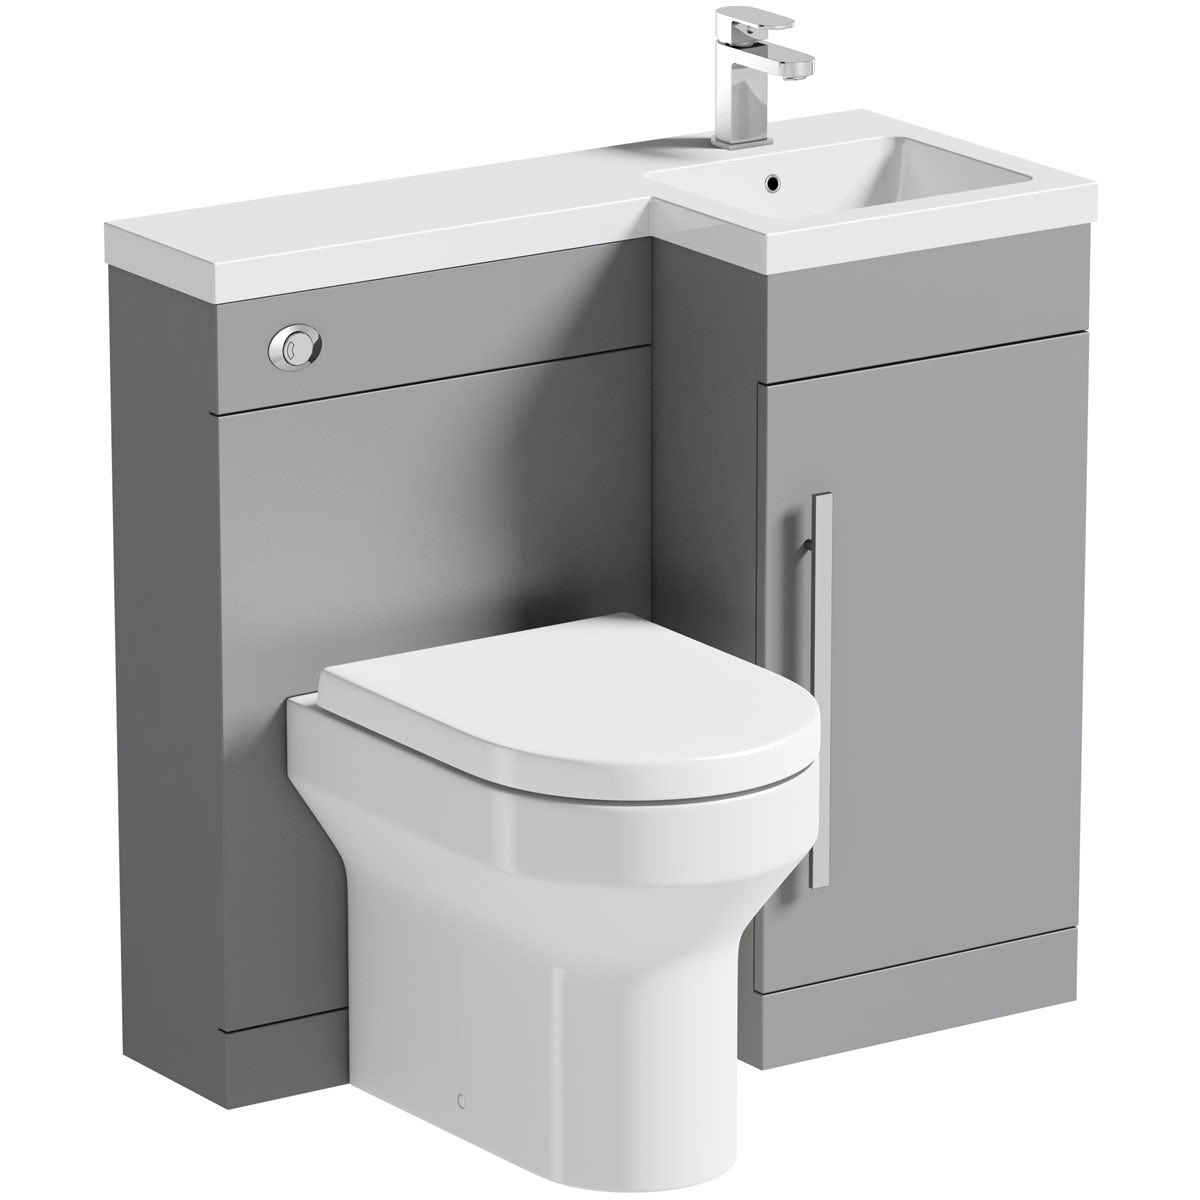 Orchard MySpace grey right handed combination unit with Wharfe toilet